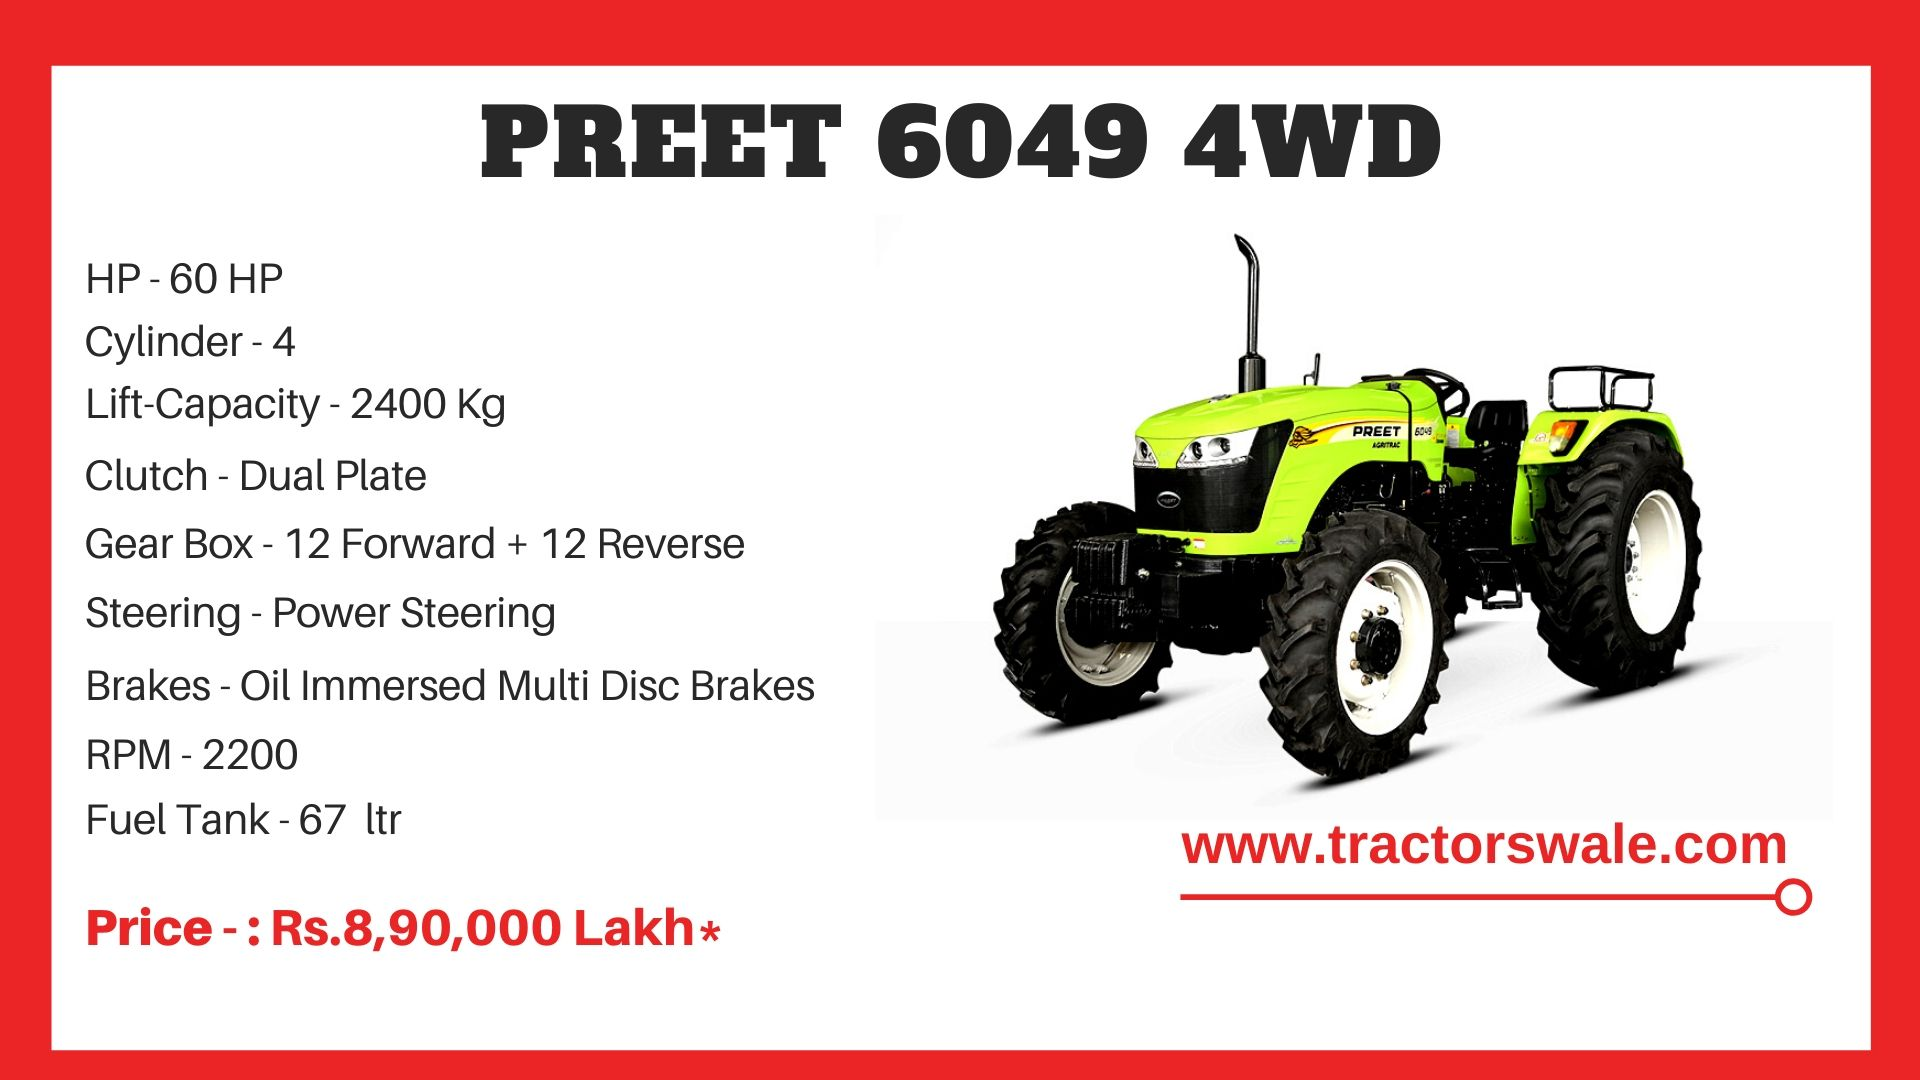 Preet 6049 4WD tractor price